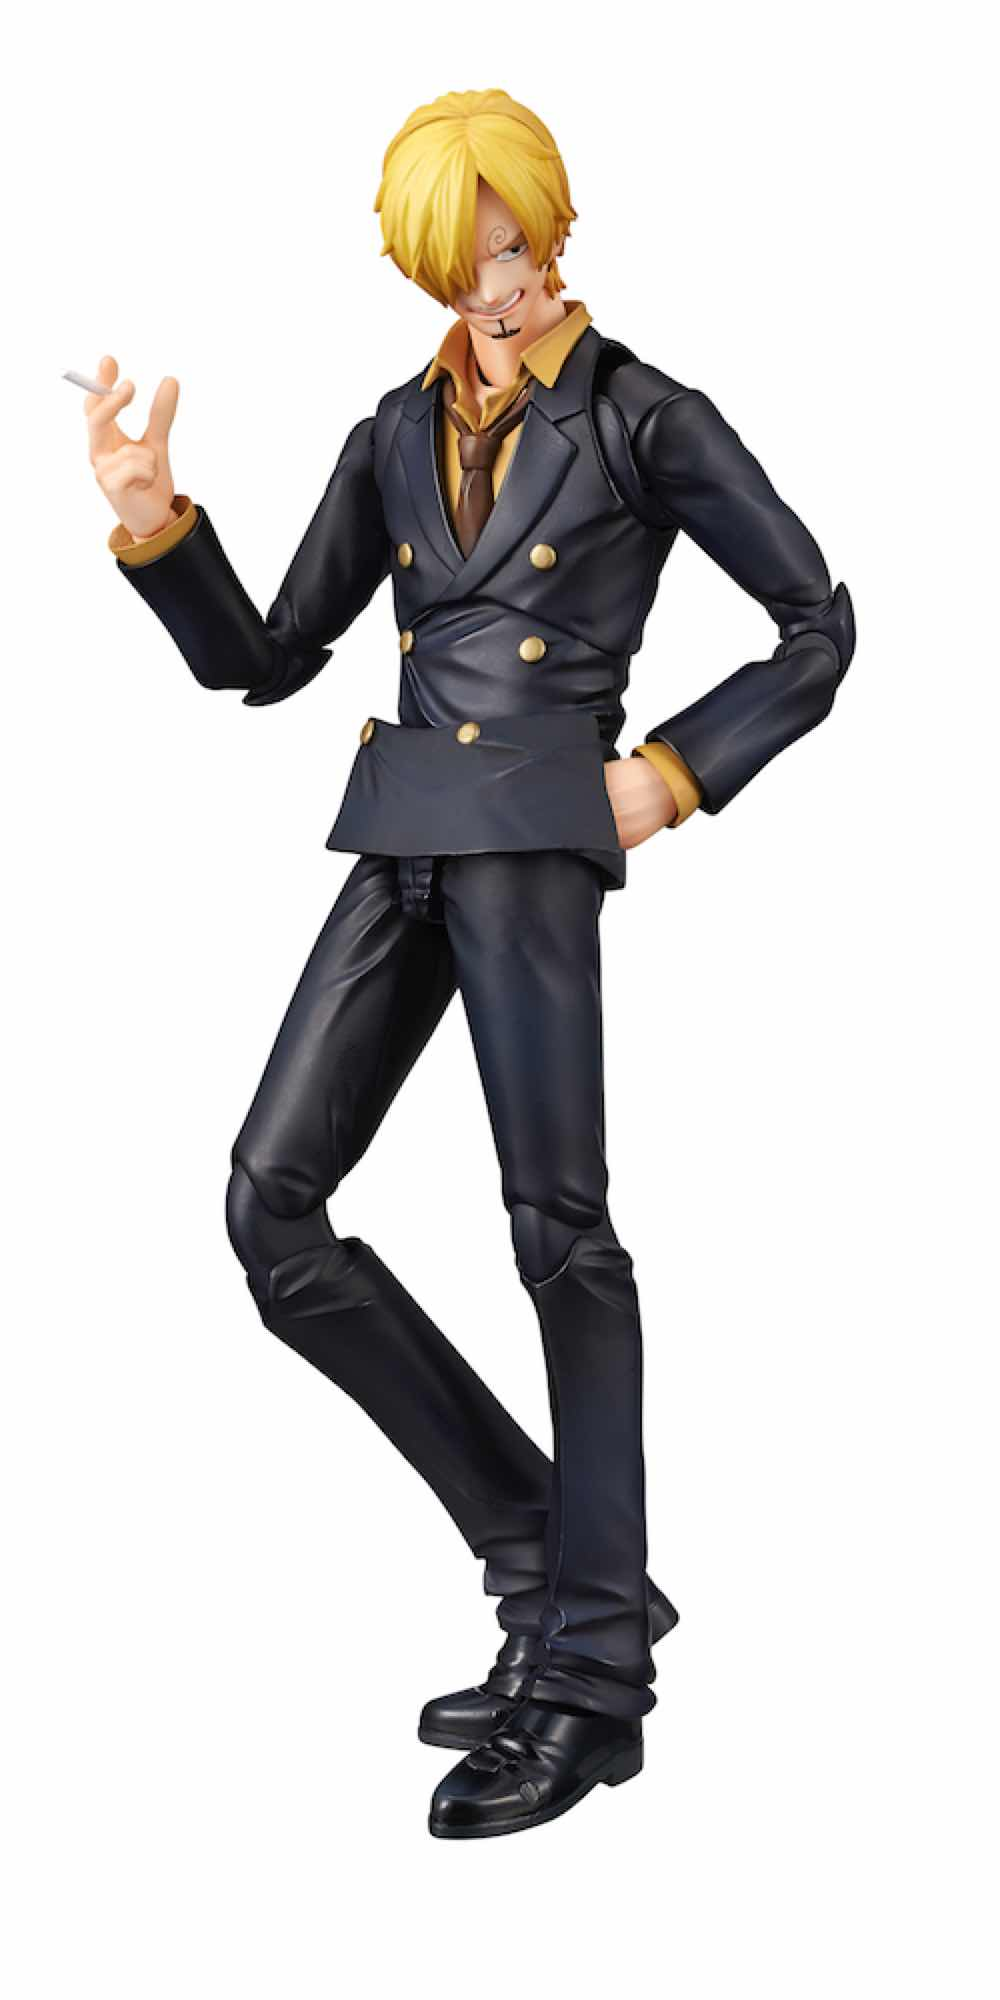 SANJI FIGURA 18 CM CM ONE PIECE VARIABLE ACTION HEROES